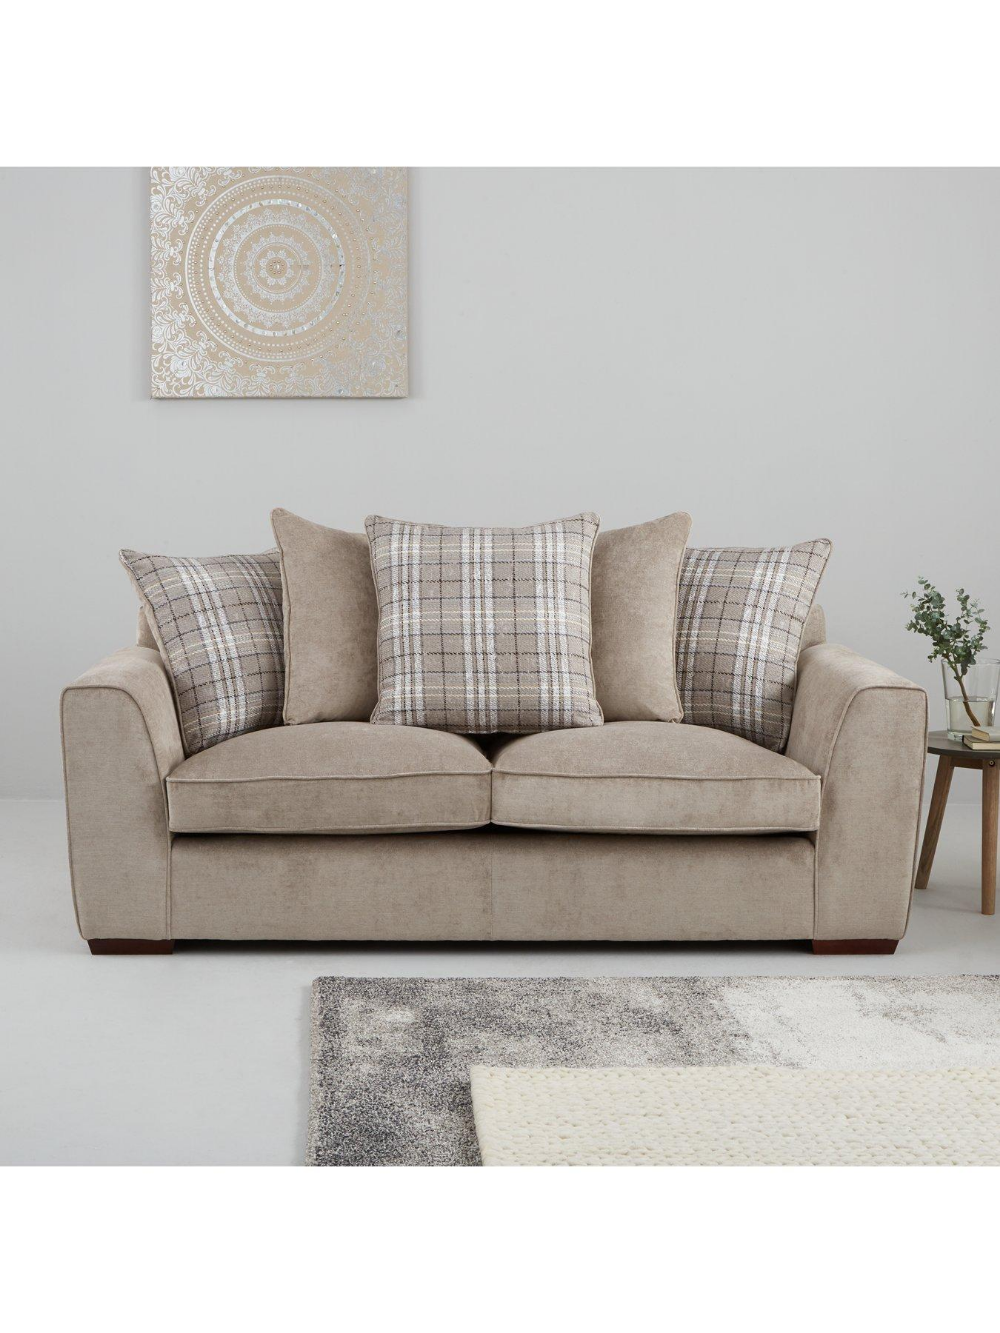 Campbell Fabric 3 Seater 2 Seater Scatter Back Sofa Set Buy And Save Sofa Set Grey Sofa Set Sofa